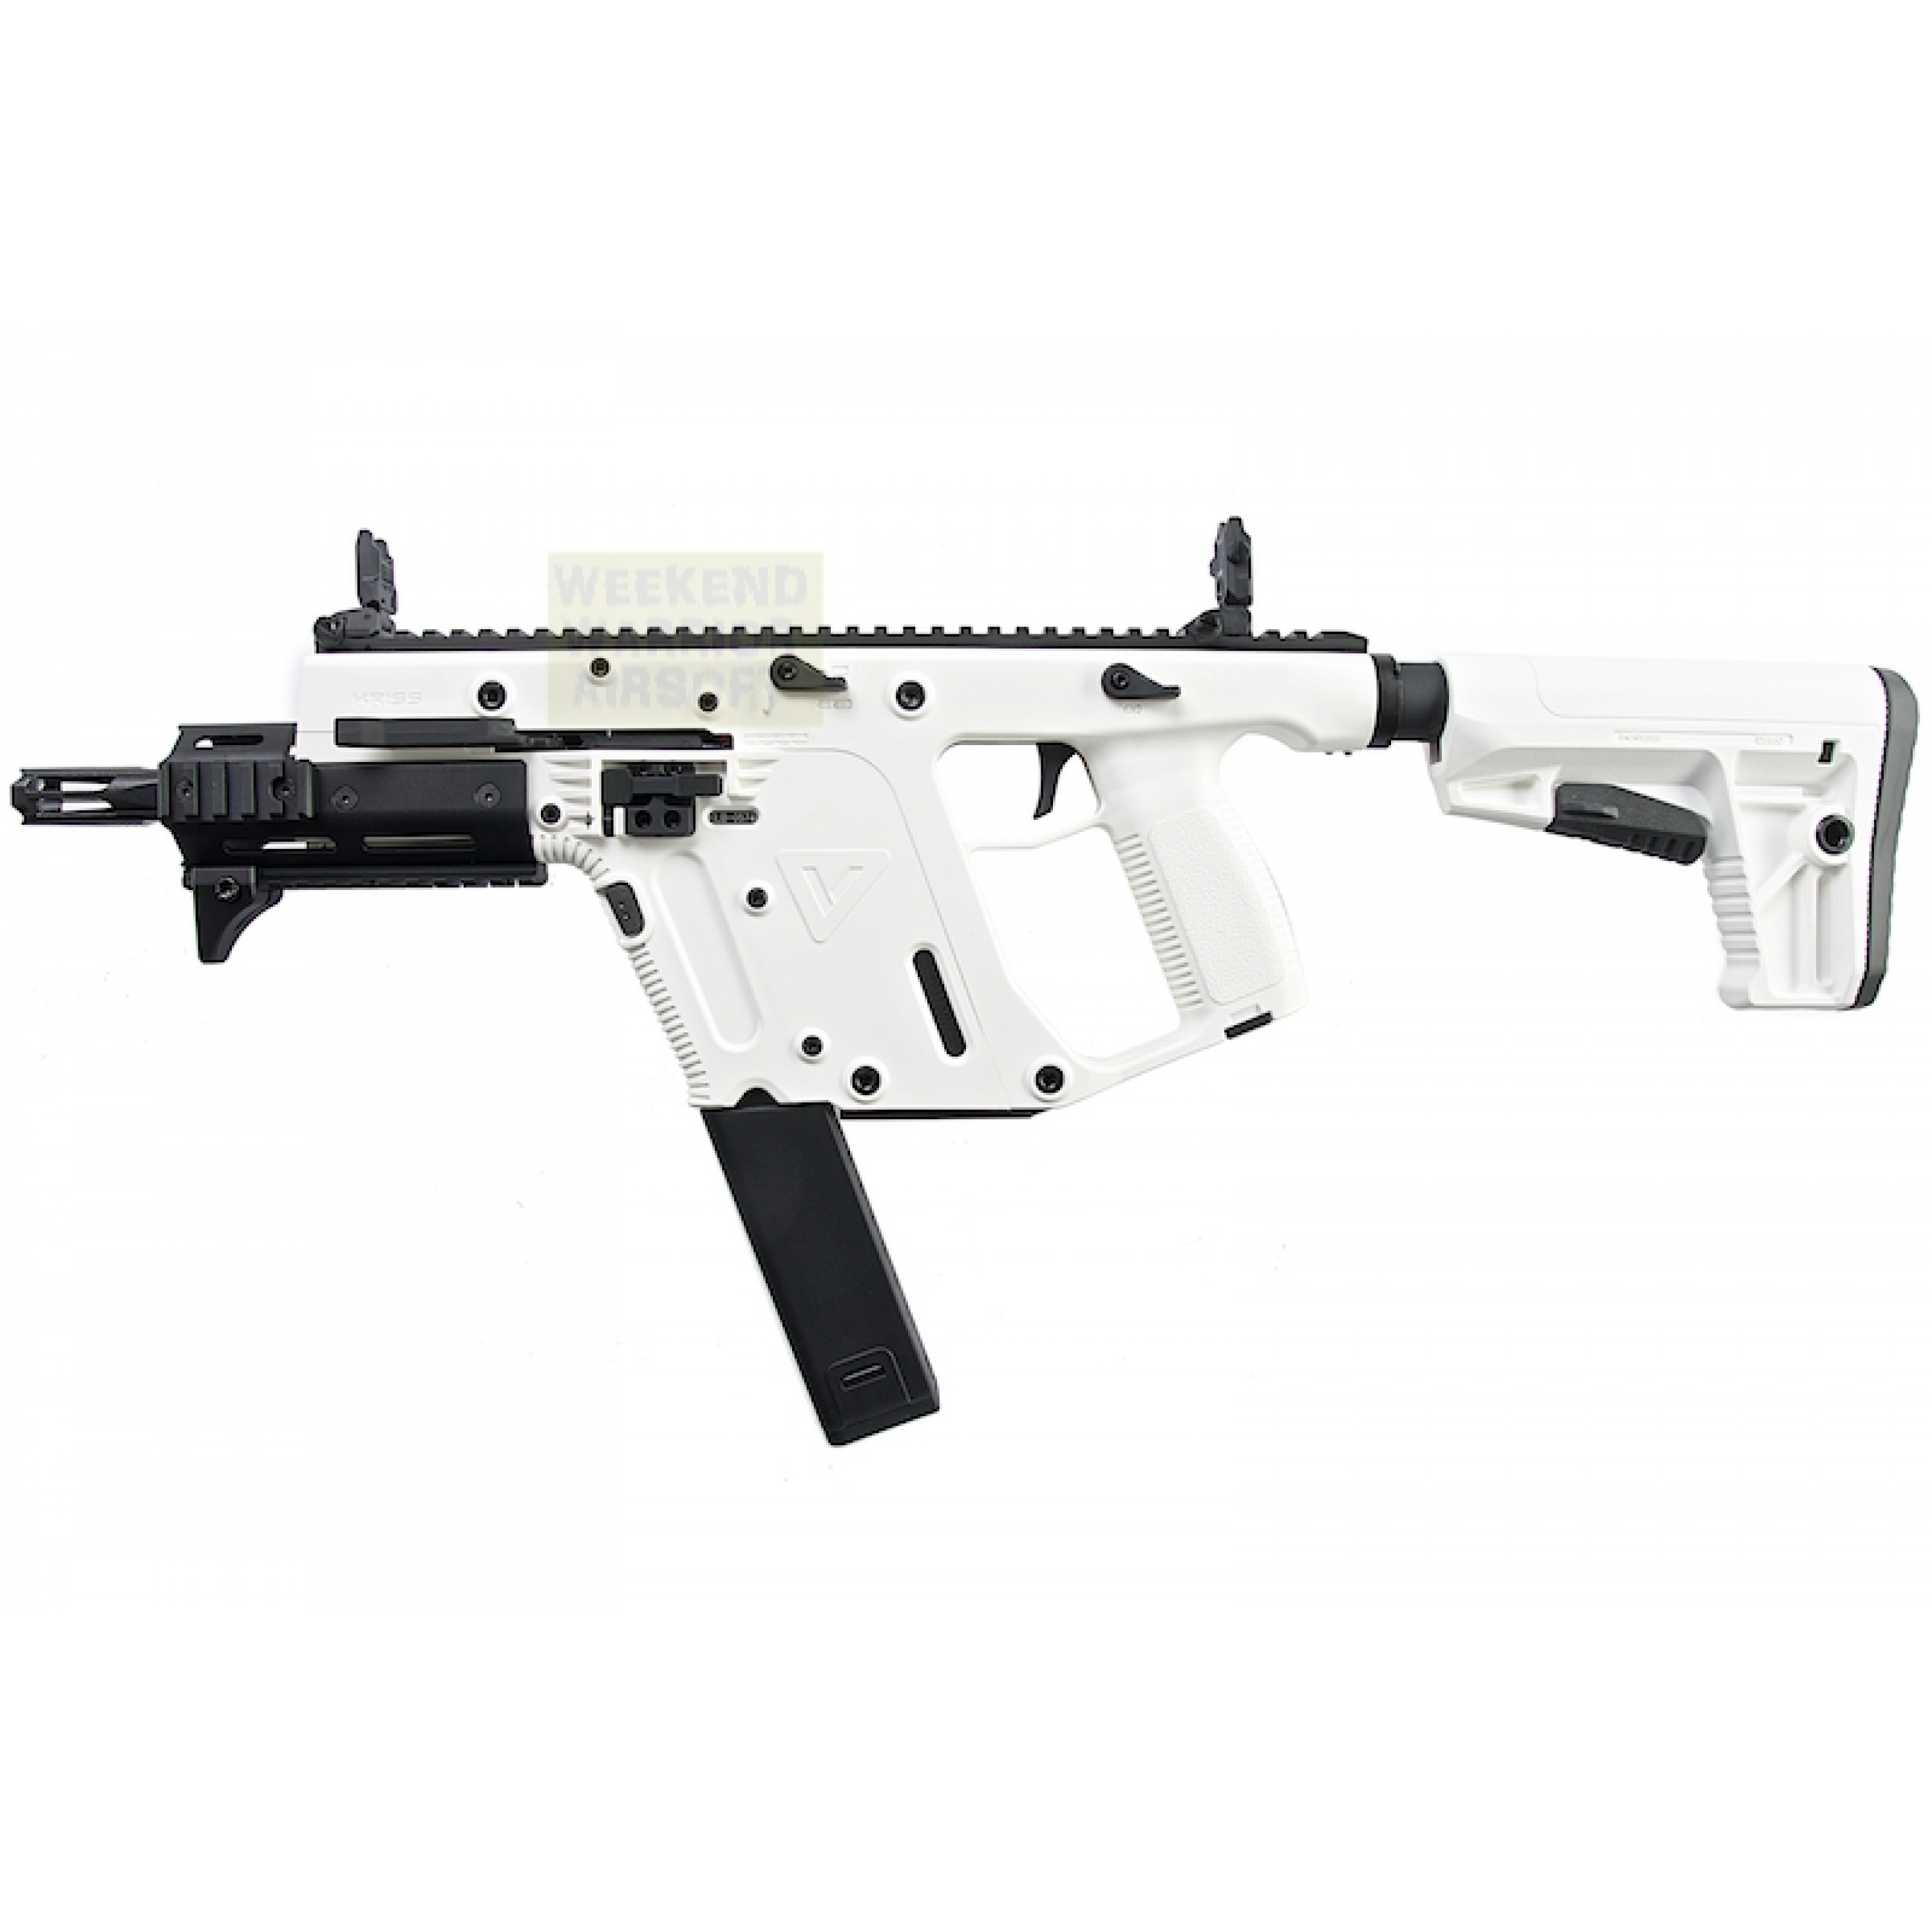 KRYTAC KRISS Vector Limited Edition 'Alpine White' AEG SMG